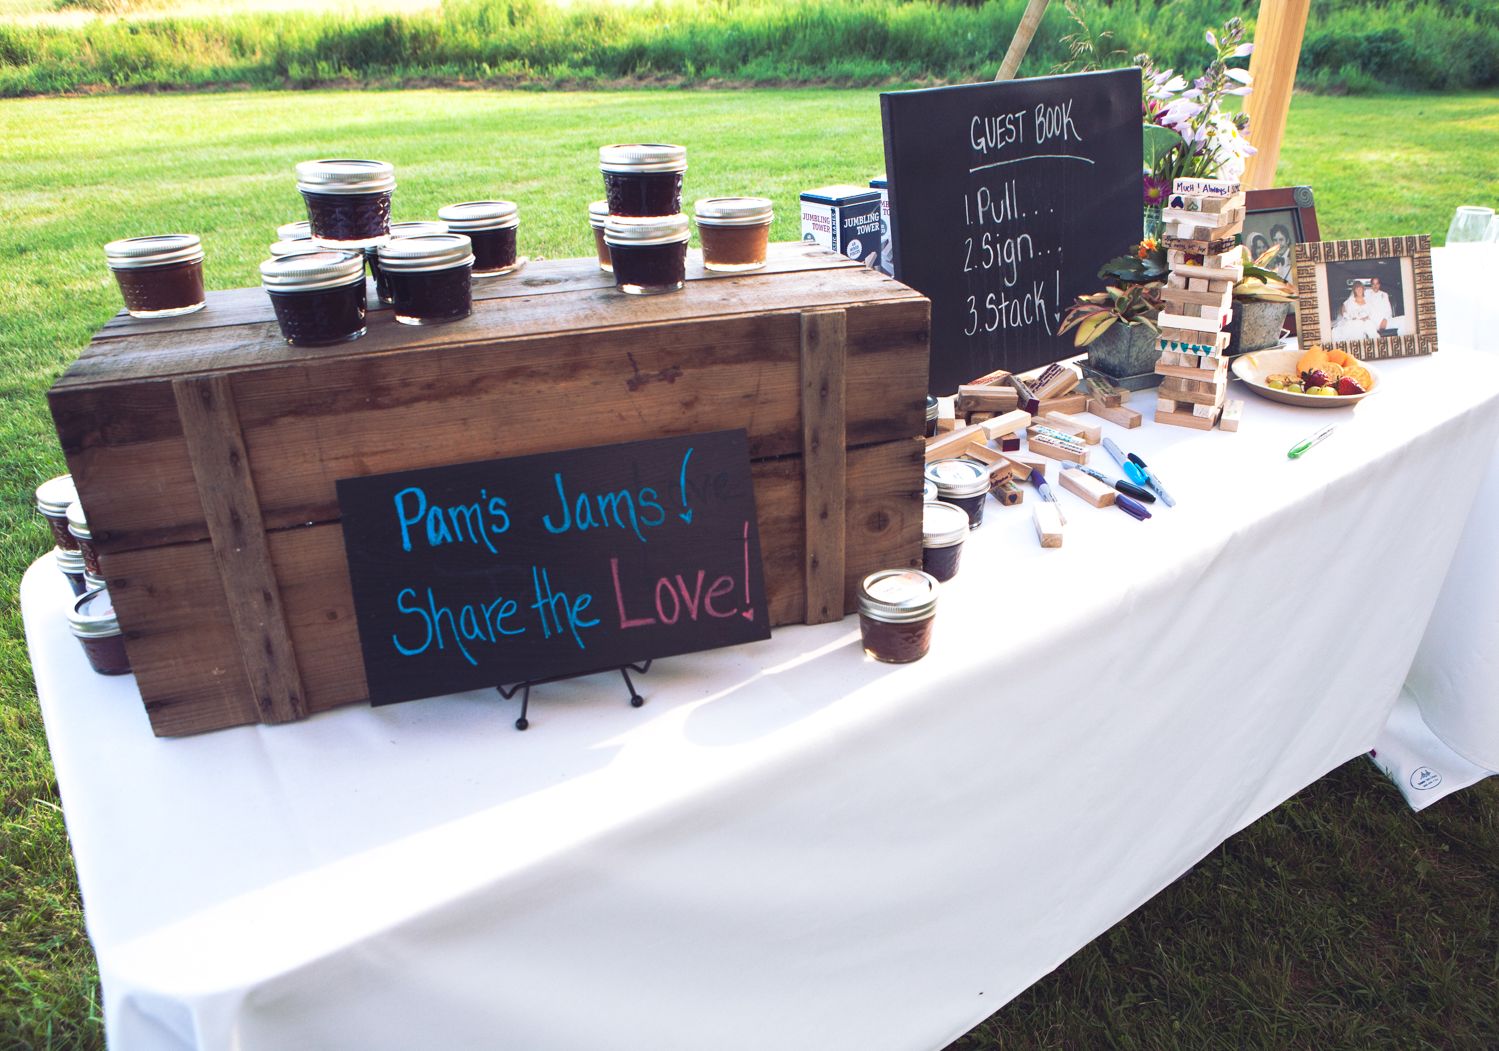 They had a cookie bar instead of a cake (all baked by friends and family), and Amy's mom made about 150 little jams from fruit in her garden as party favors. Source: Evangeline Lane Photography